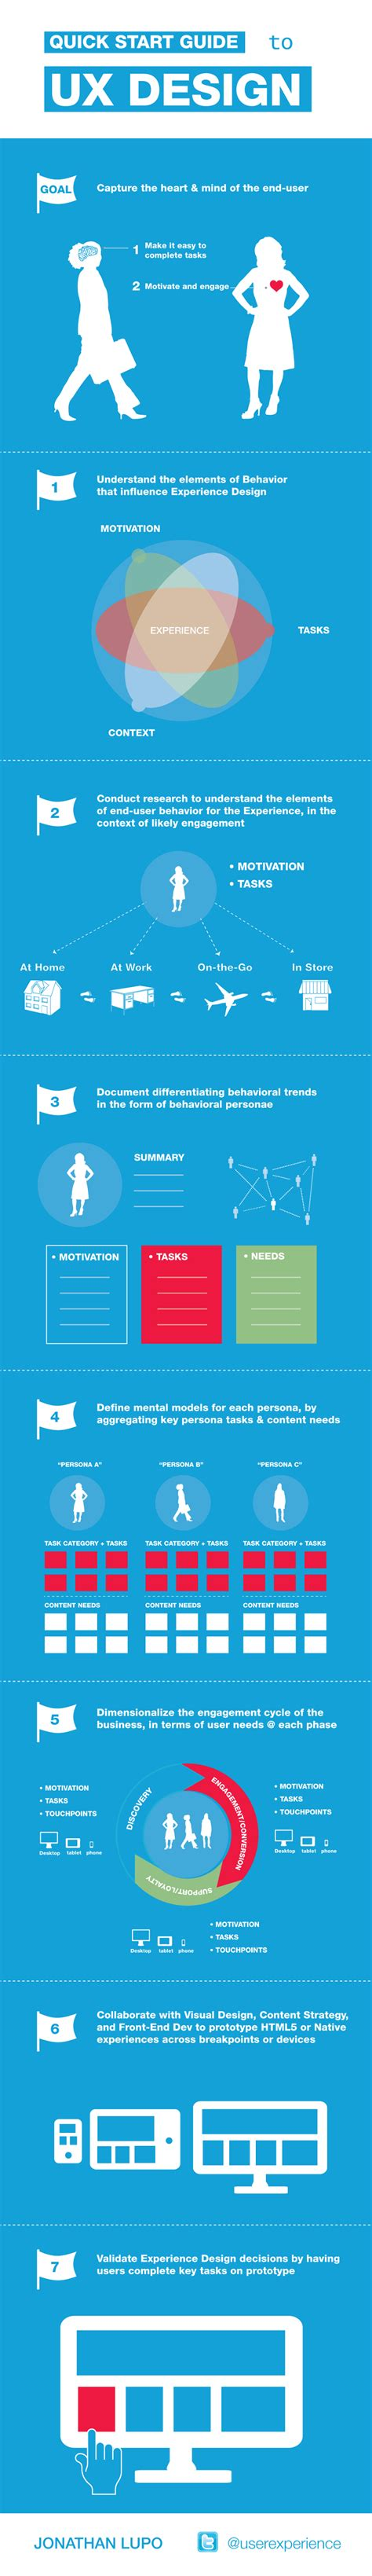 Guide To User Experience (ux) Design Brandongaillecom